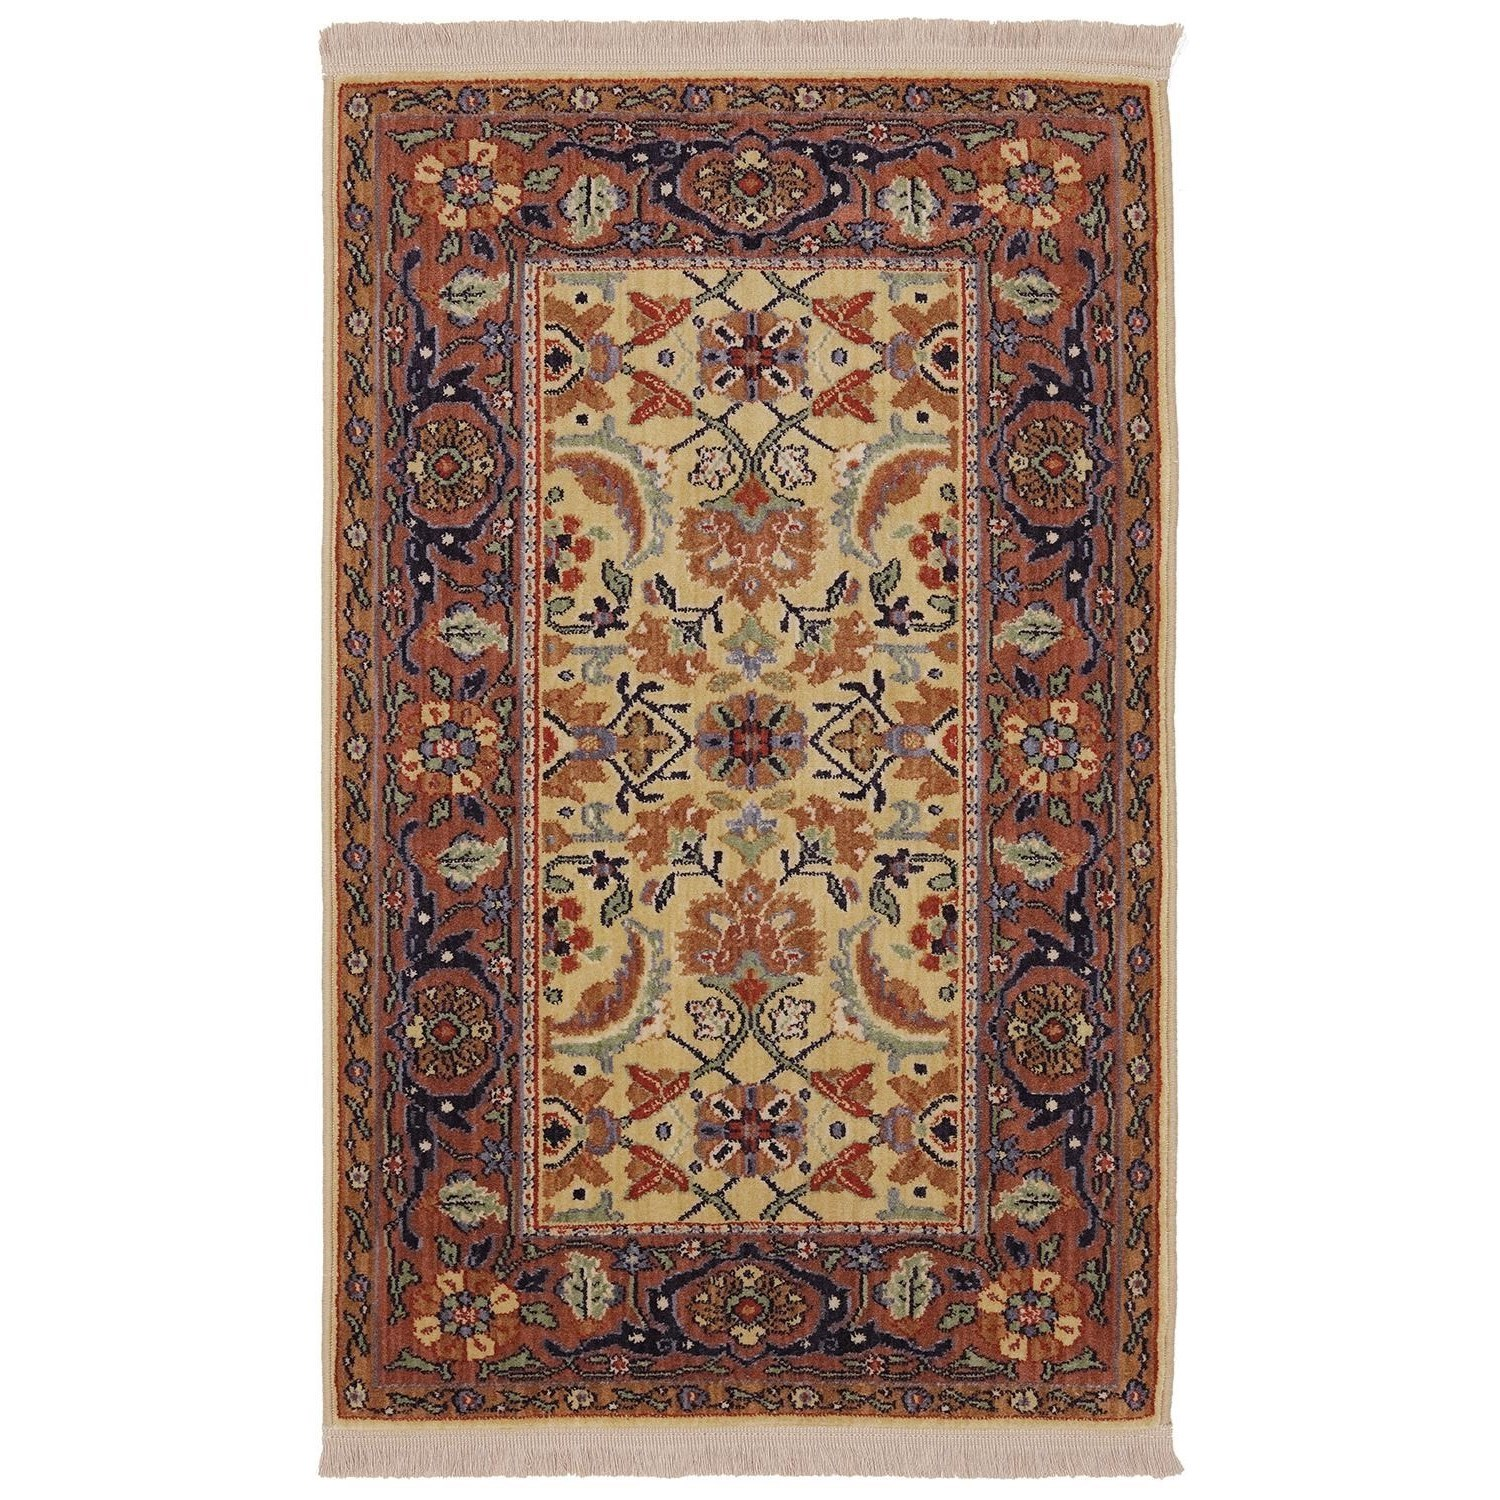 Karastan Rugs English Manor 5'7x7'11 Brighton Rug - Item Number: 02120 00506 067095